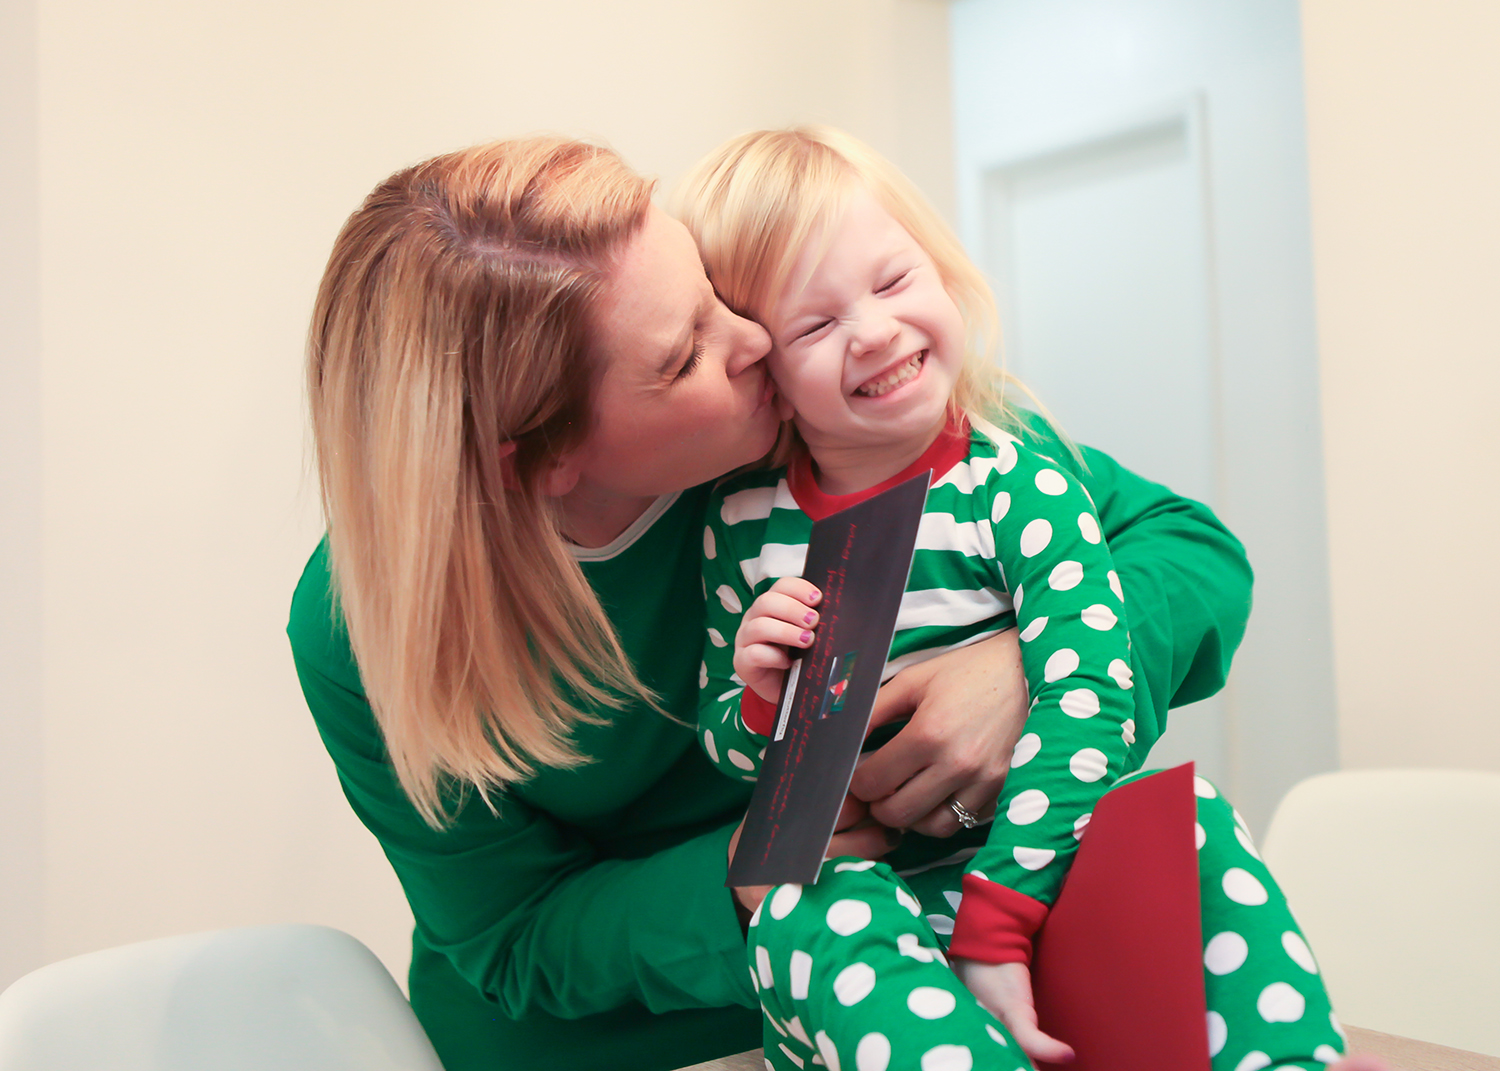 Family Photo Ideas: I love these options and ideas for easy holiday pictures!